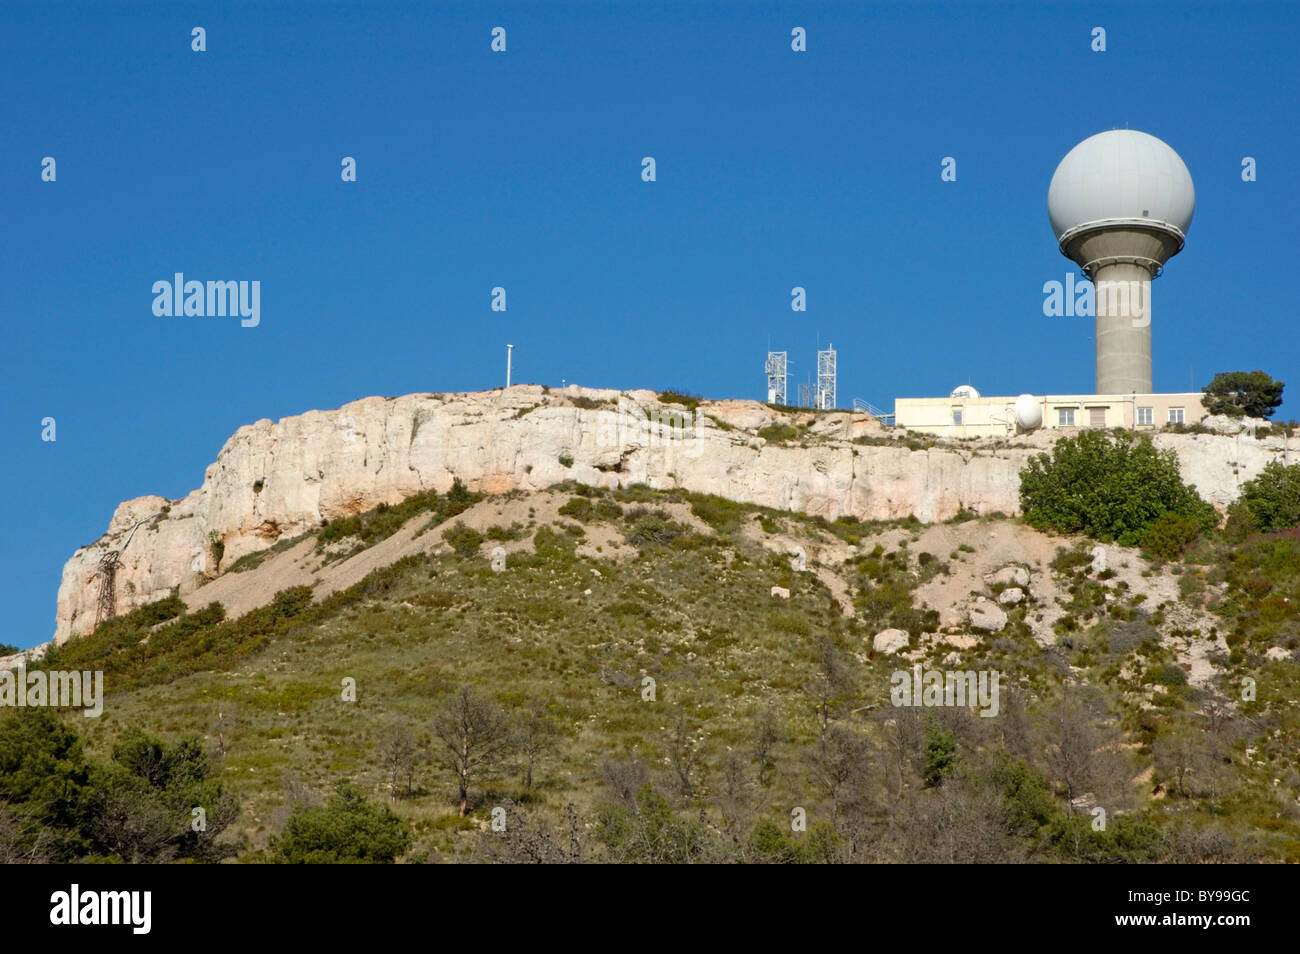 Meteorological station dome on a cliff top, Vitrolles, Provence, France. - Stock Image